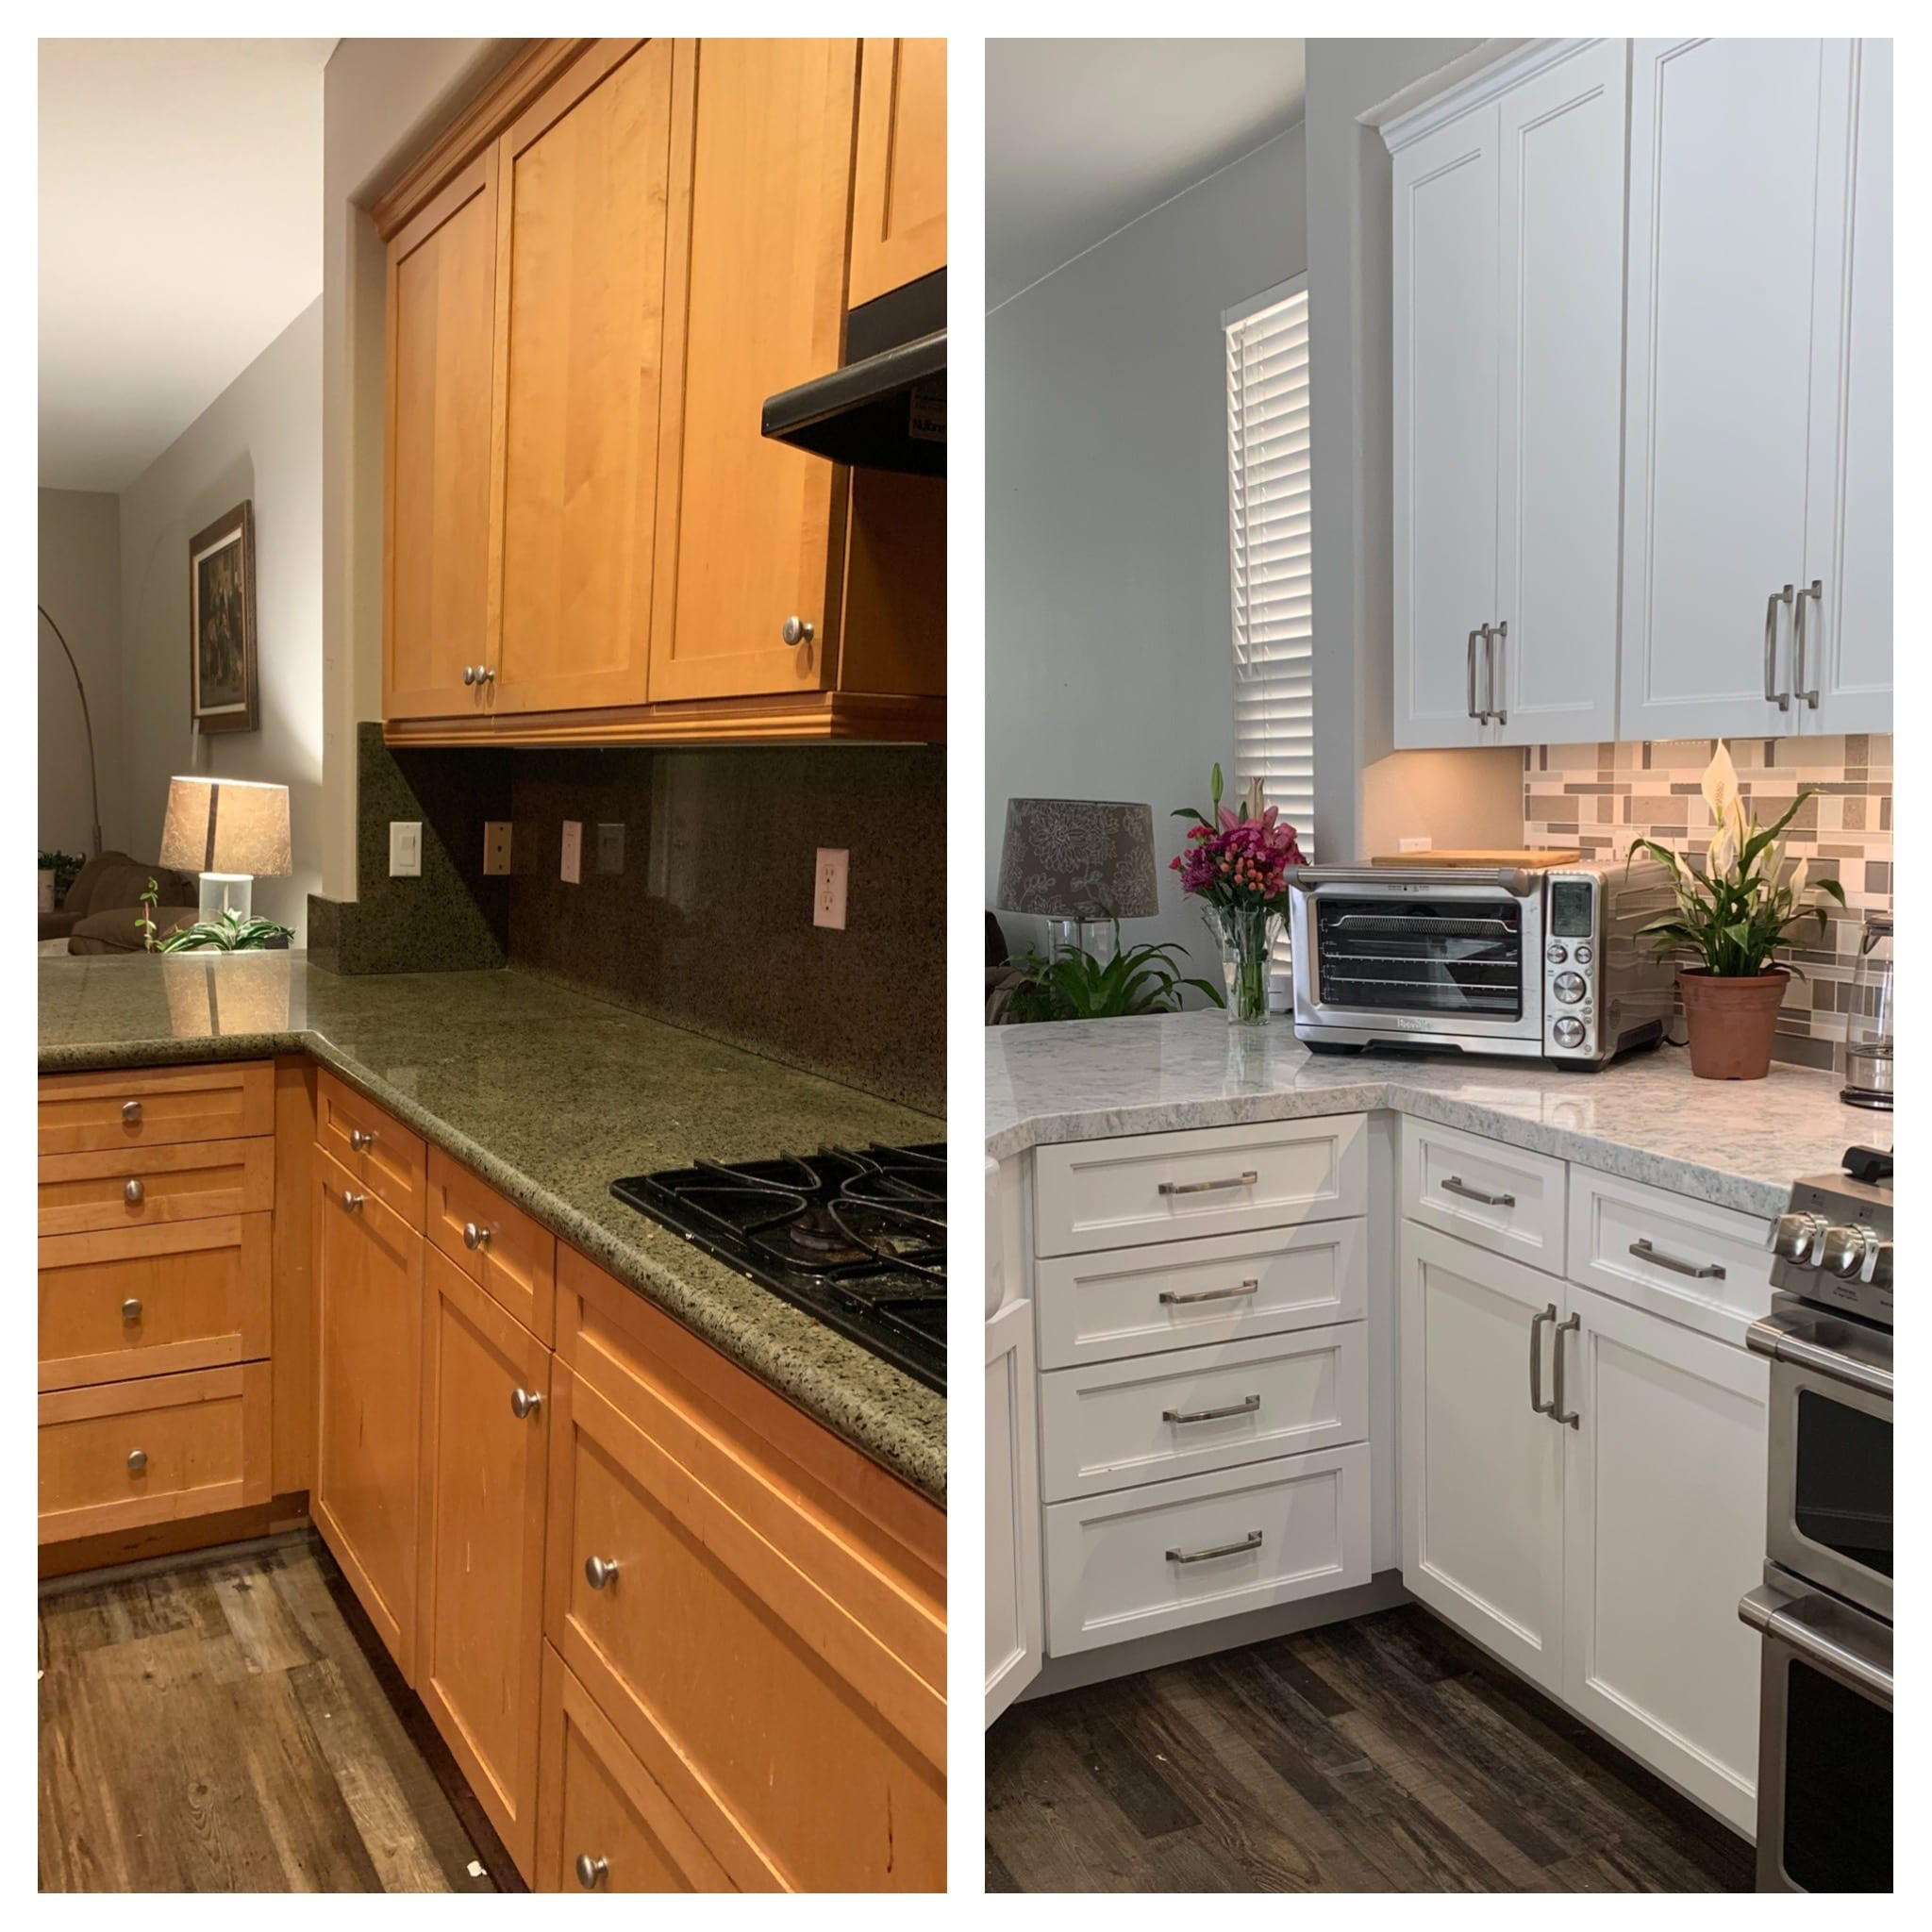 Baker's Kitchen BEFORE & AFTER